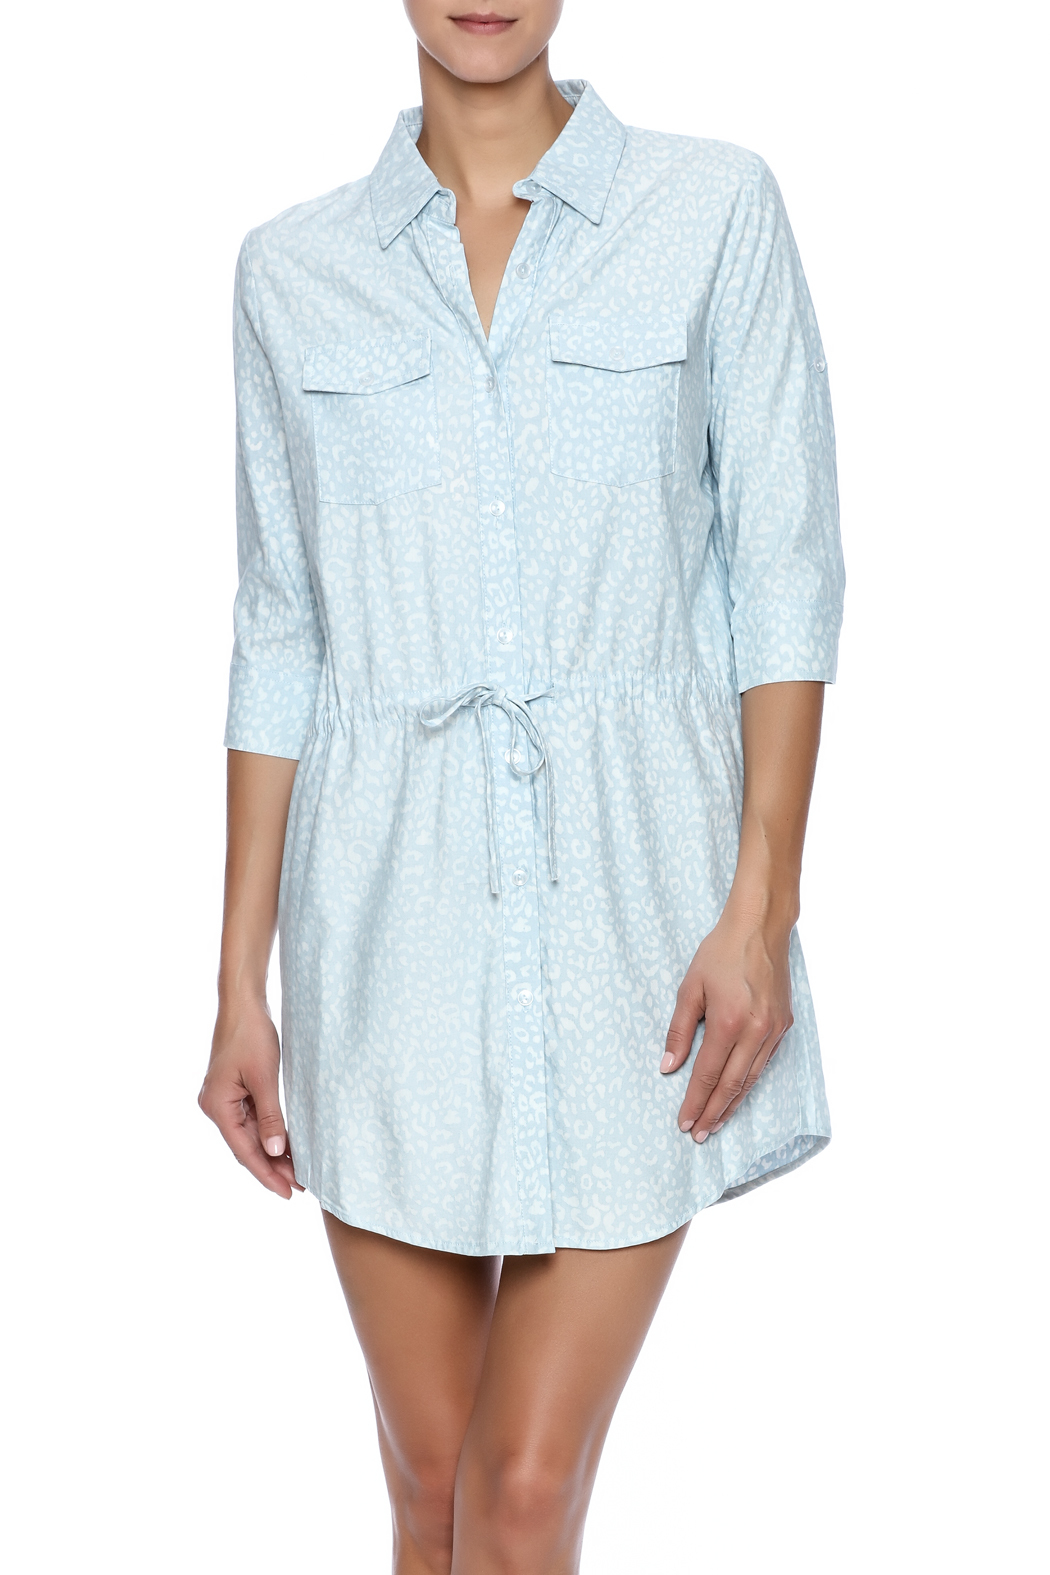 Buddy Love Orlando Shirt Dress - Front Cropped Image